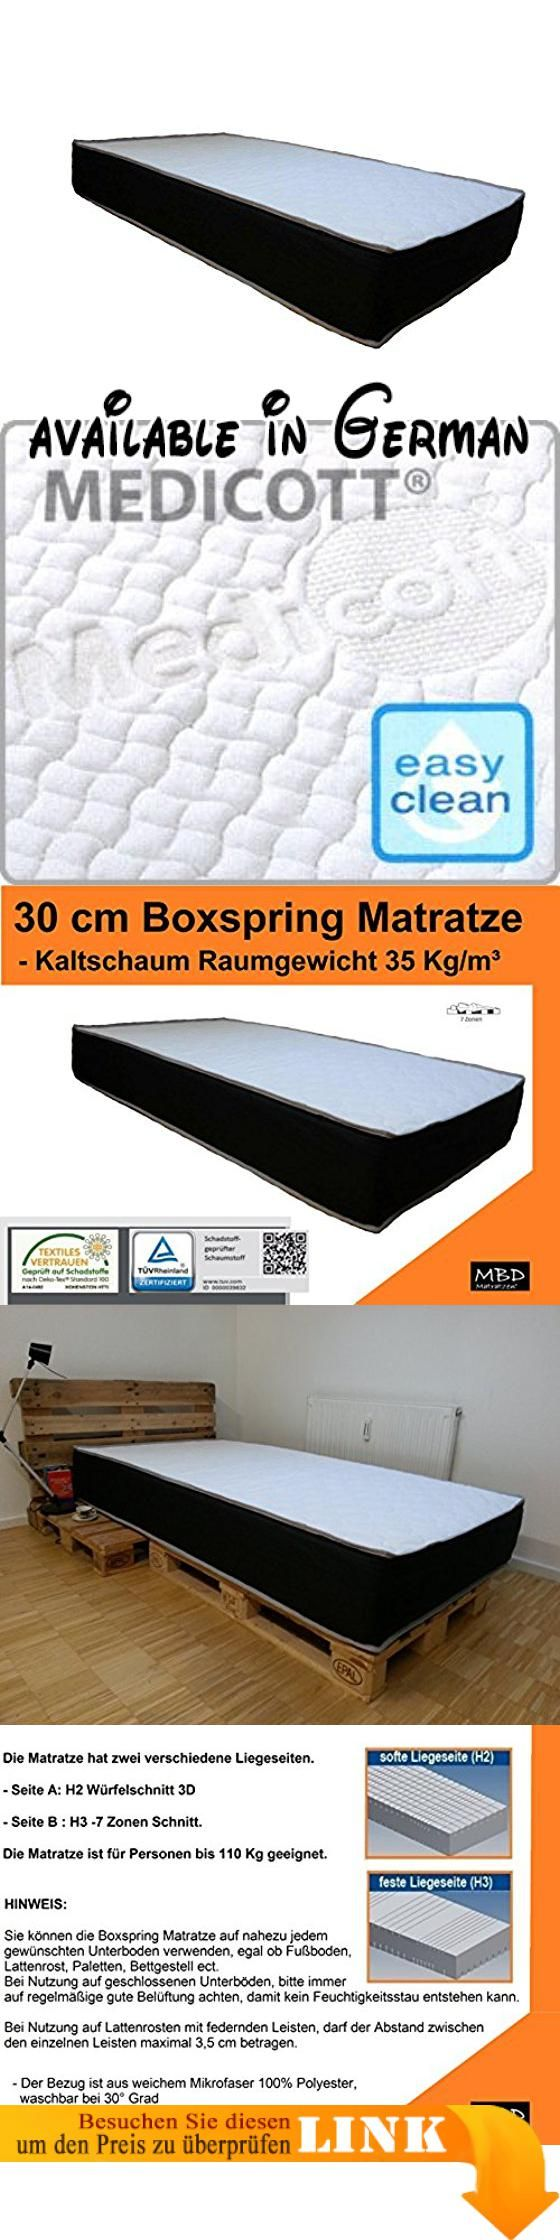 Enchanting Boxspringmatratze Collection Of Boxspring Matratze - Rg 35 Kg/m